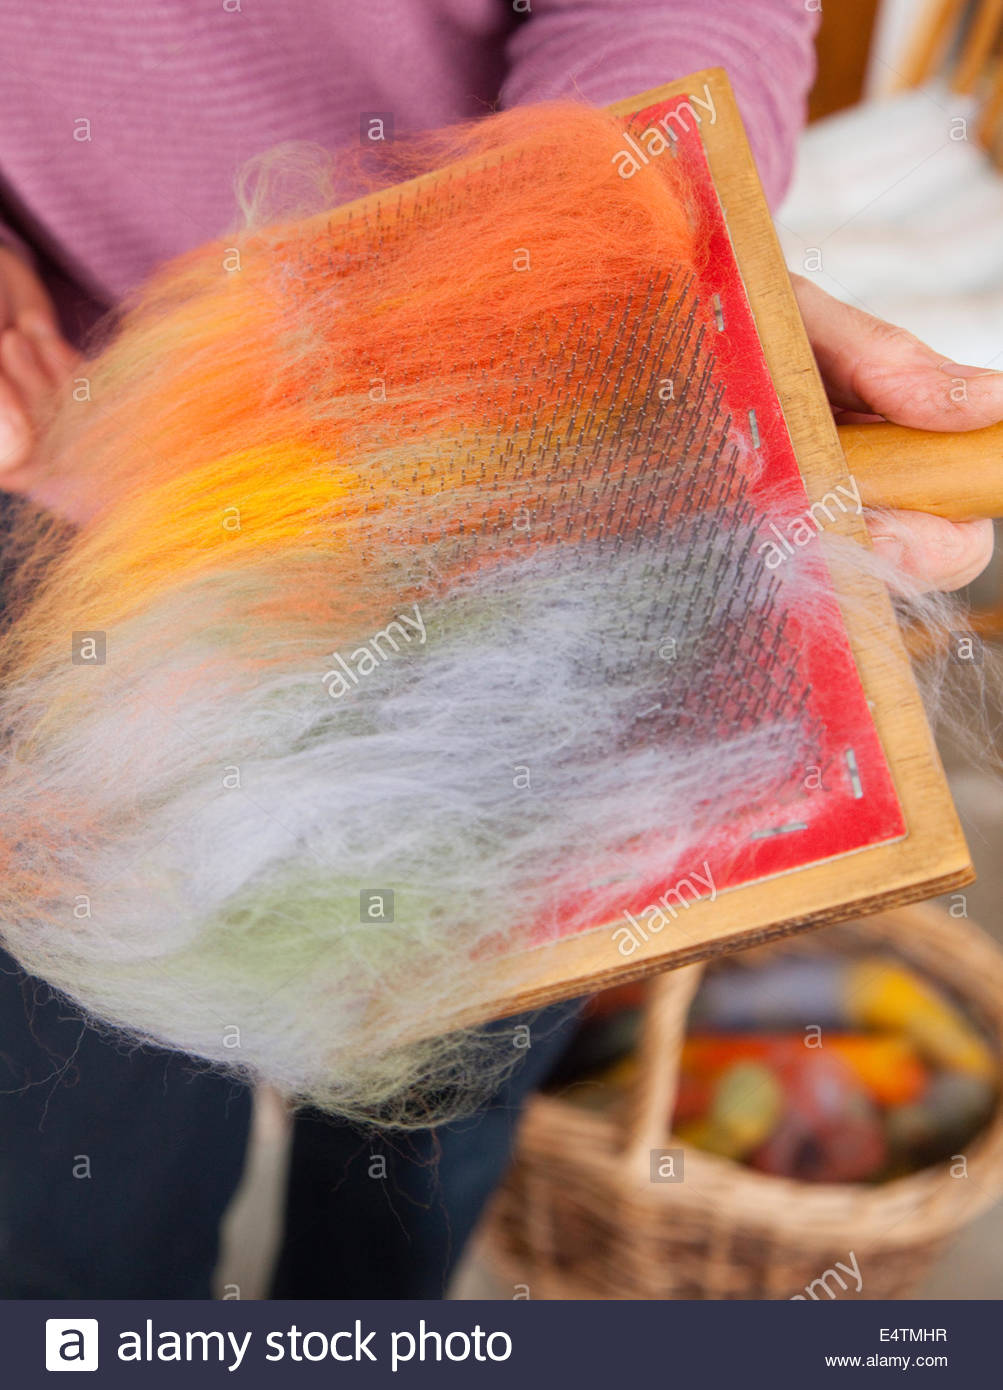 Carding - part of the spinning wool process at the Hebridean Woolshed at West Kilbride, Isle of South Uist, Outer - Stock Image